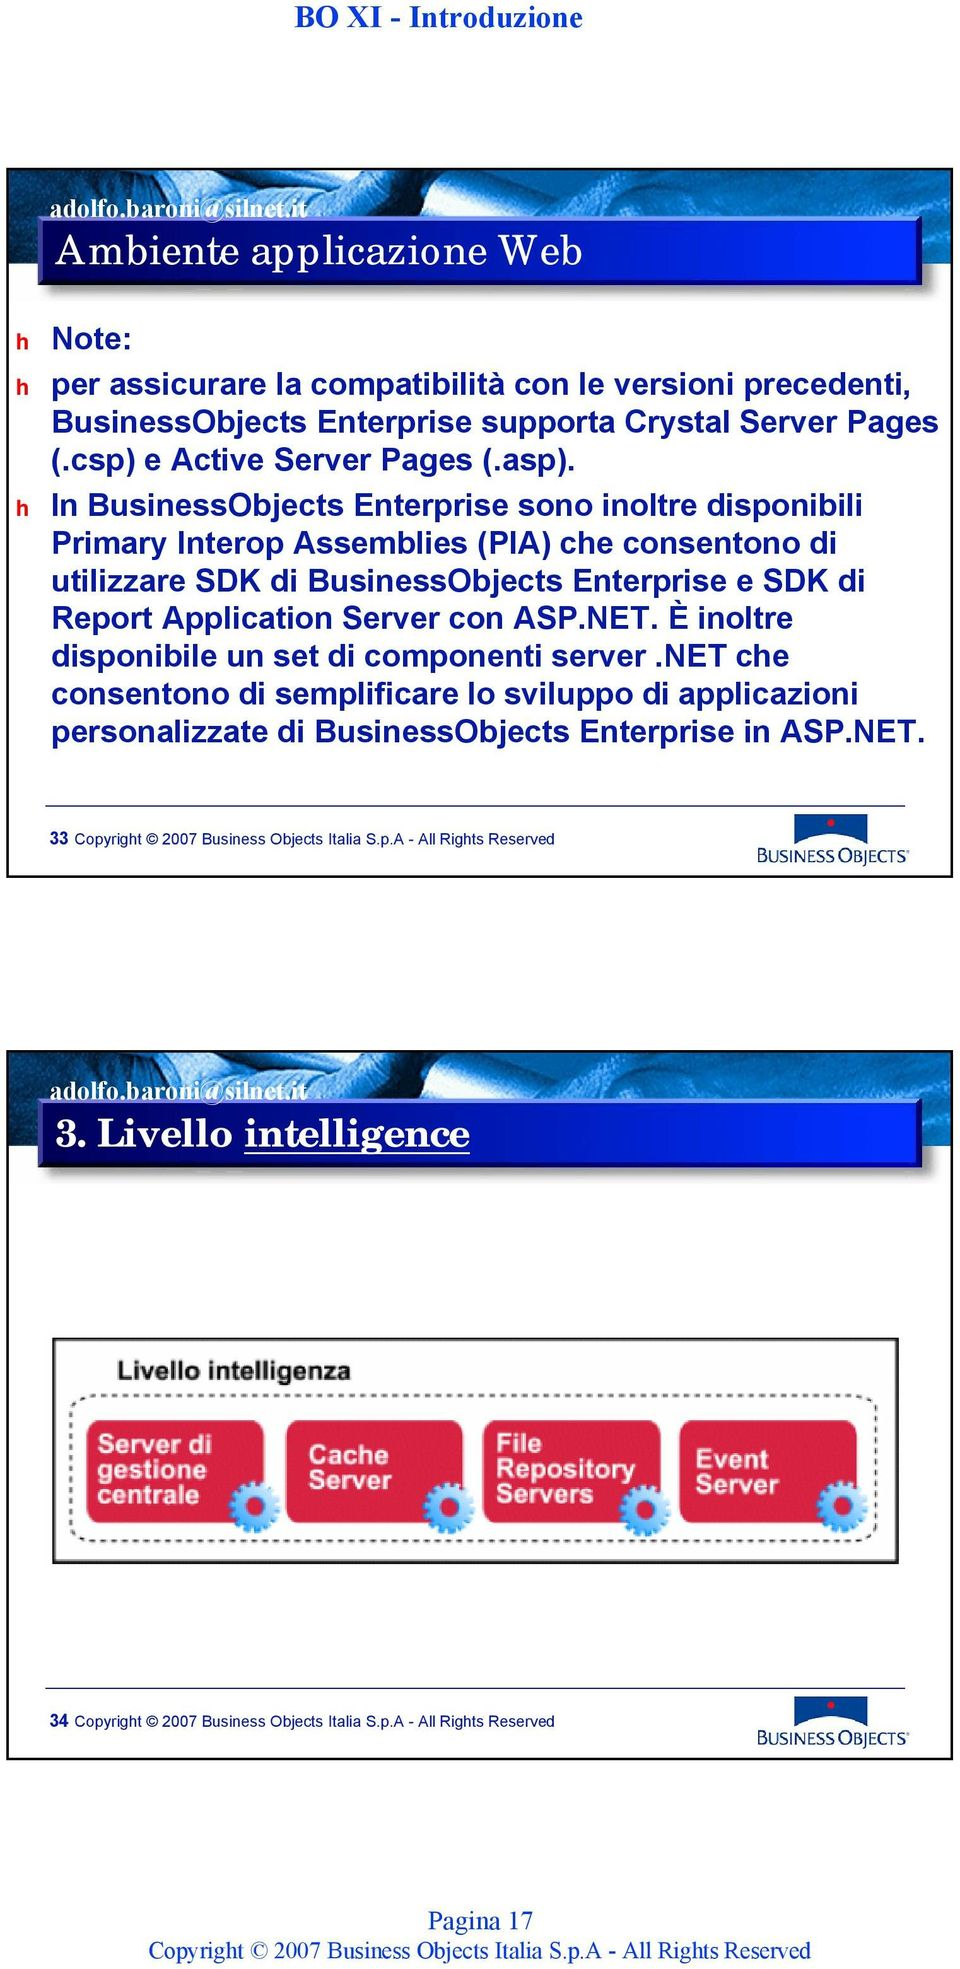 h In BusinessObjects Enterprise sono inoltre disponibili Primary Interop Assemblies (PIA) che consentono di utilizzare SDK di BusinessObjects